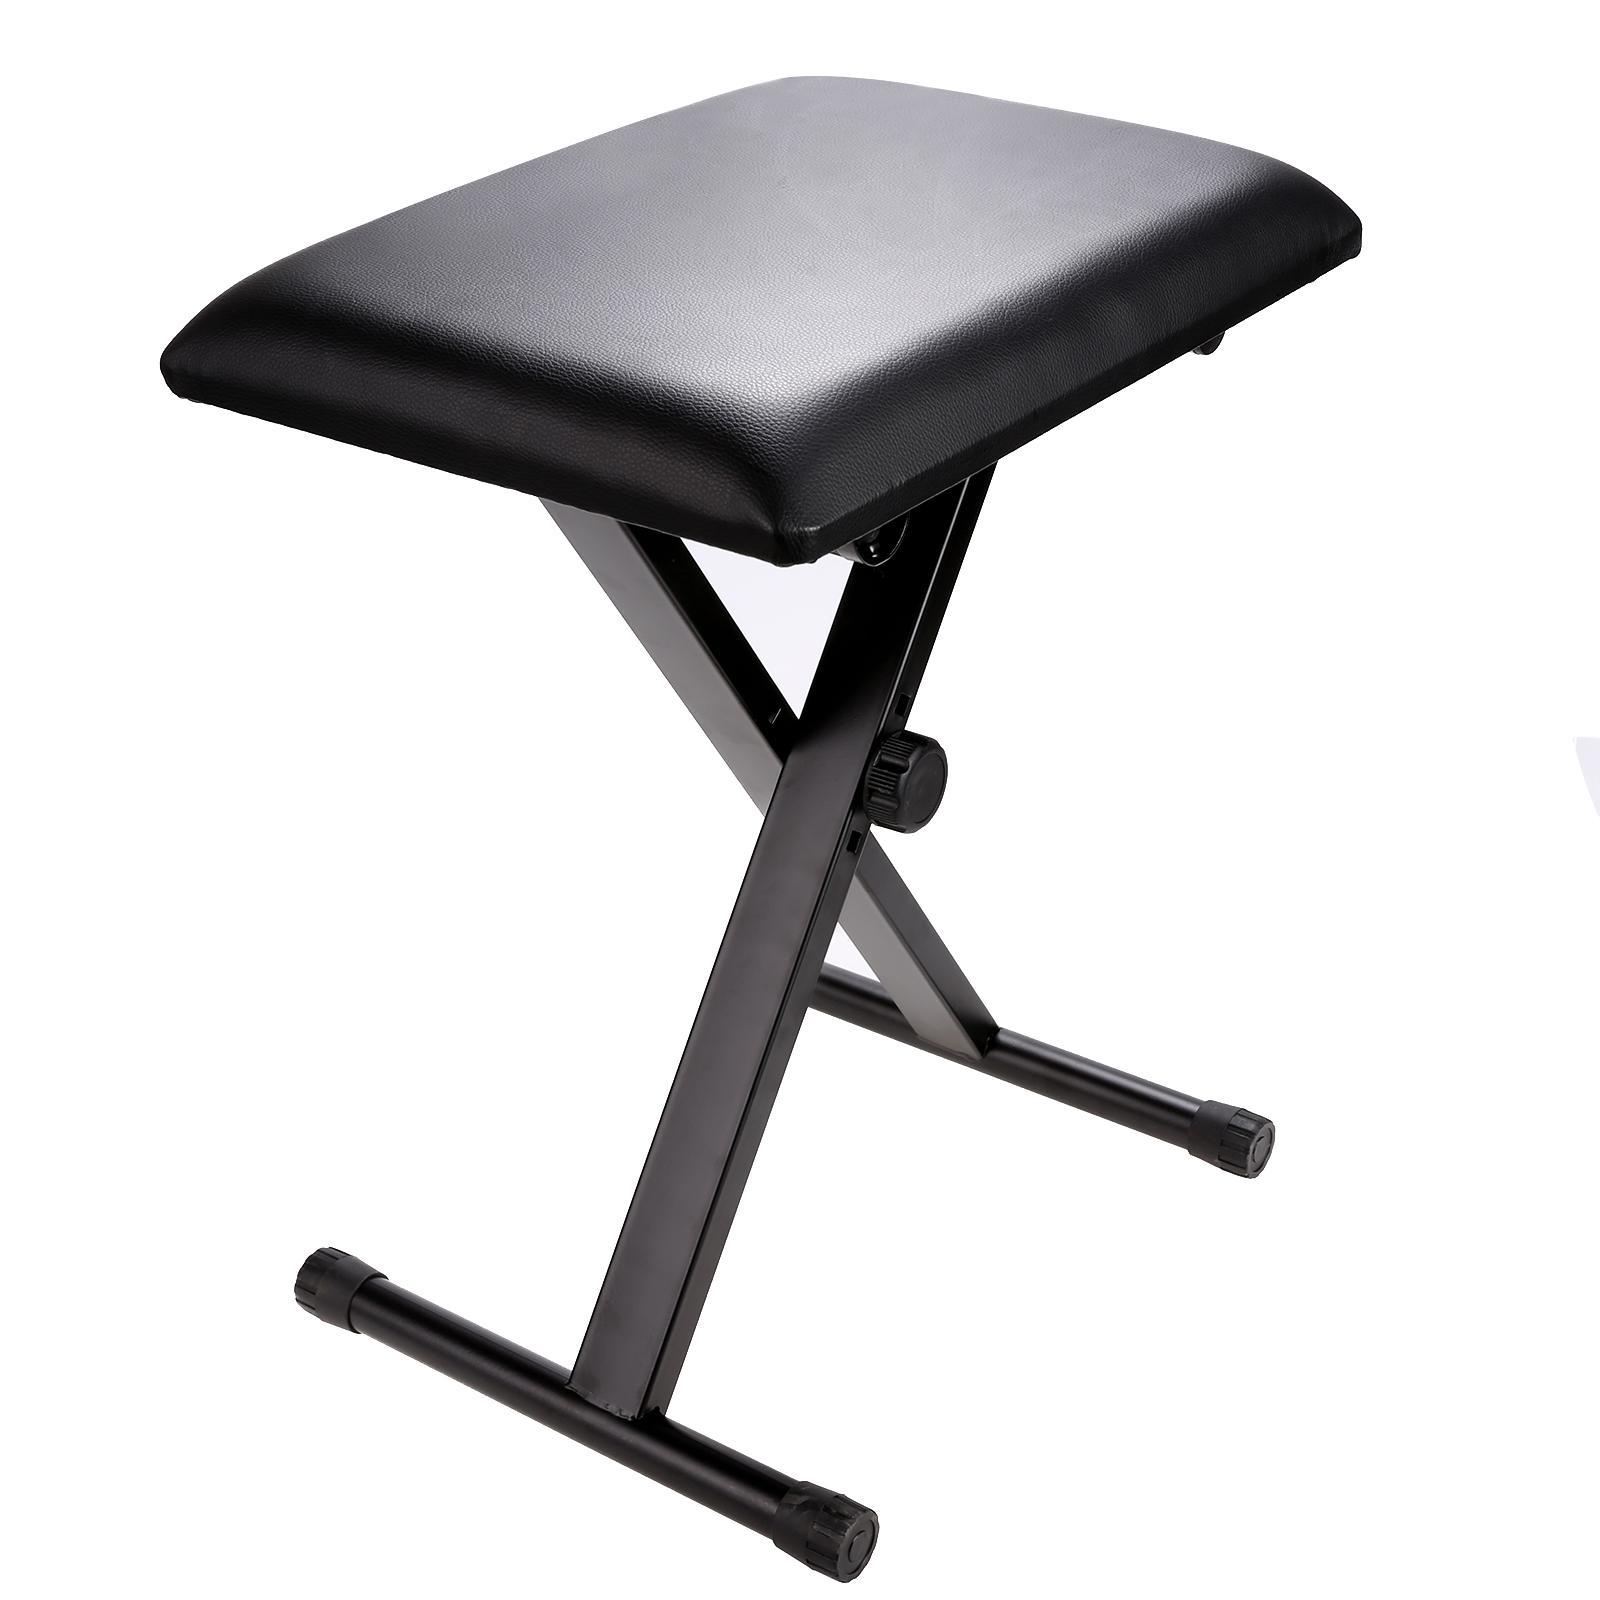 Adjustable Piano Keyboard Bench Stool Chair �with Leather Padded Seat Rubber Folding Feet... by